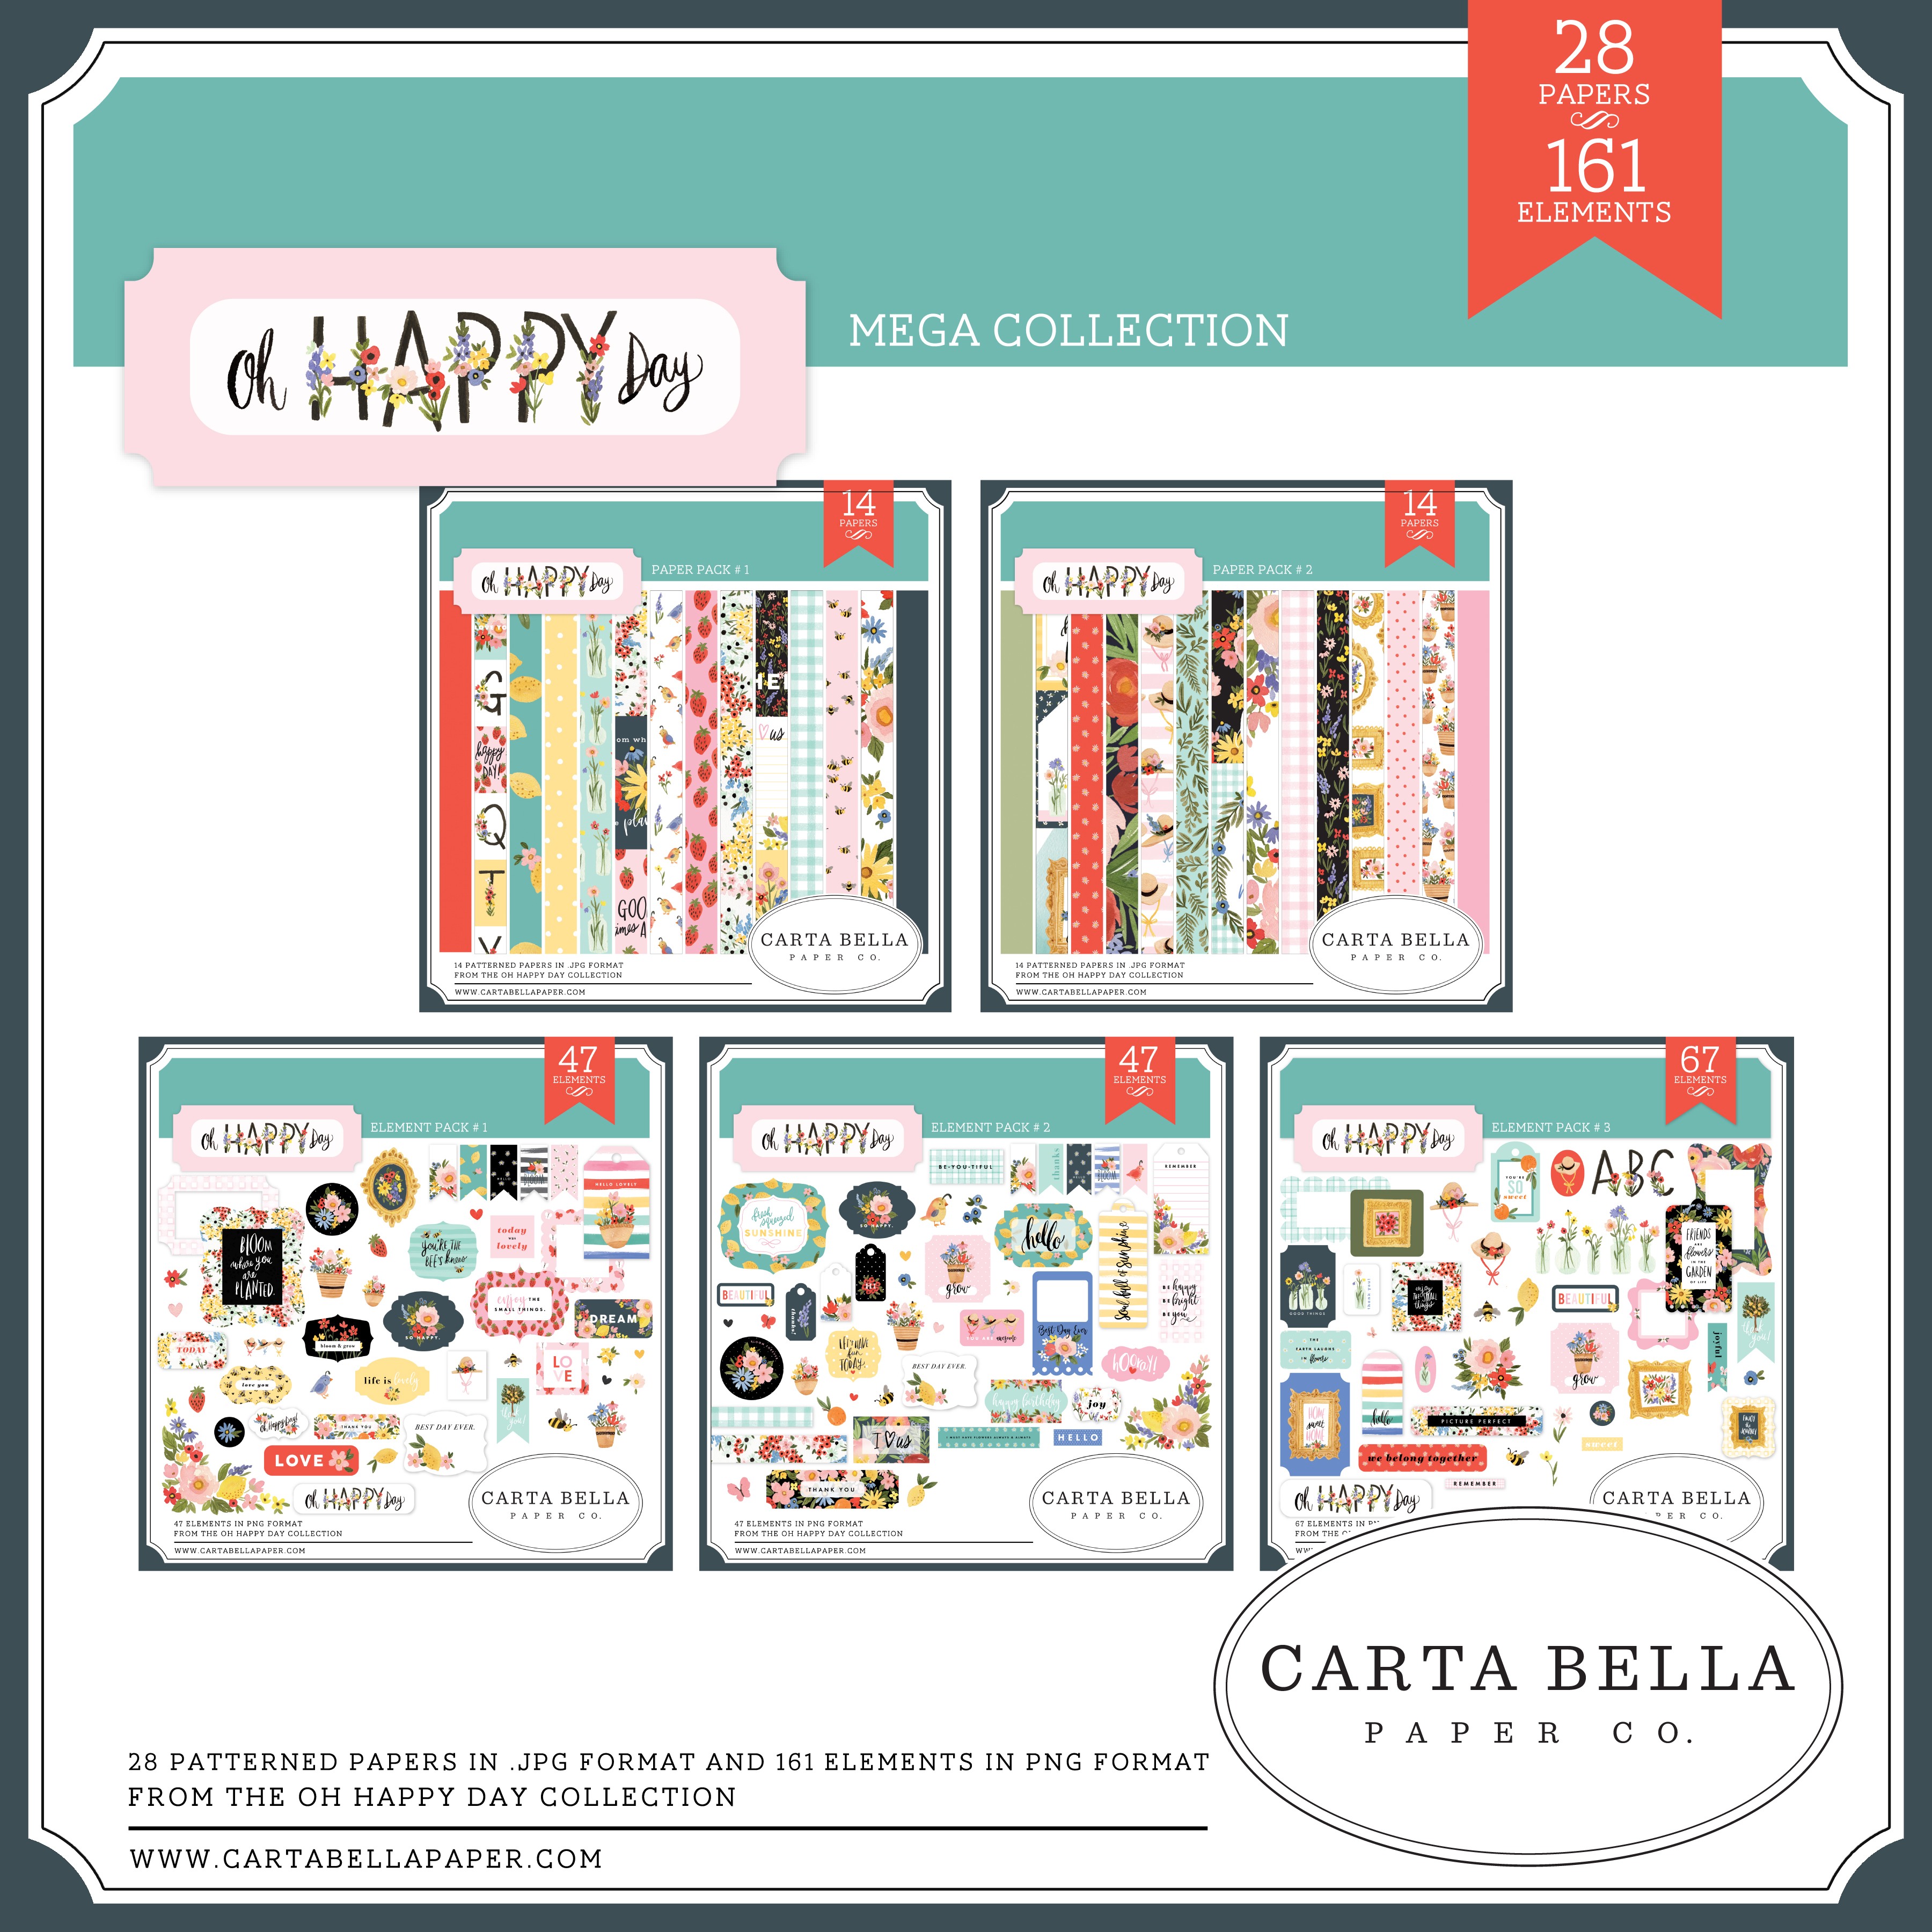 Oh Happy Day Mega Collection